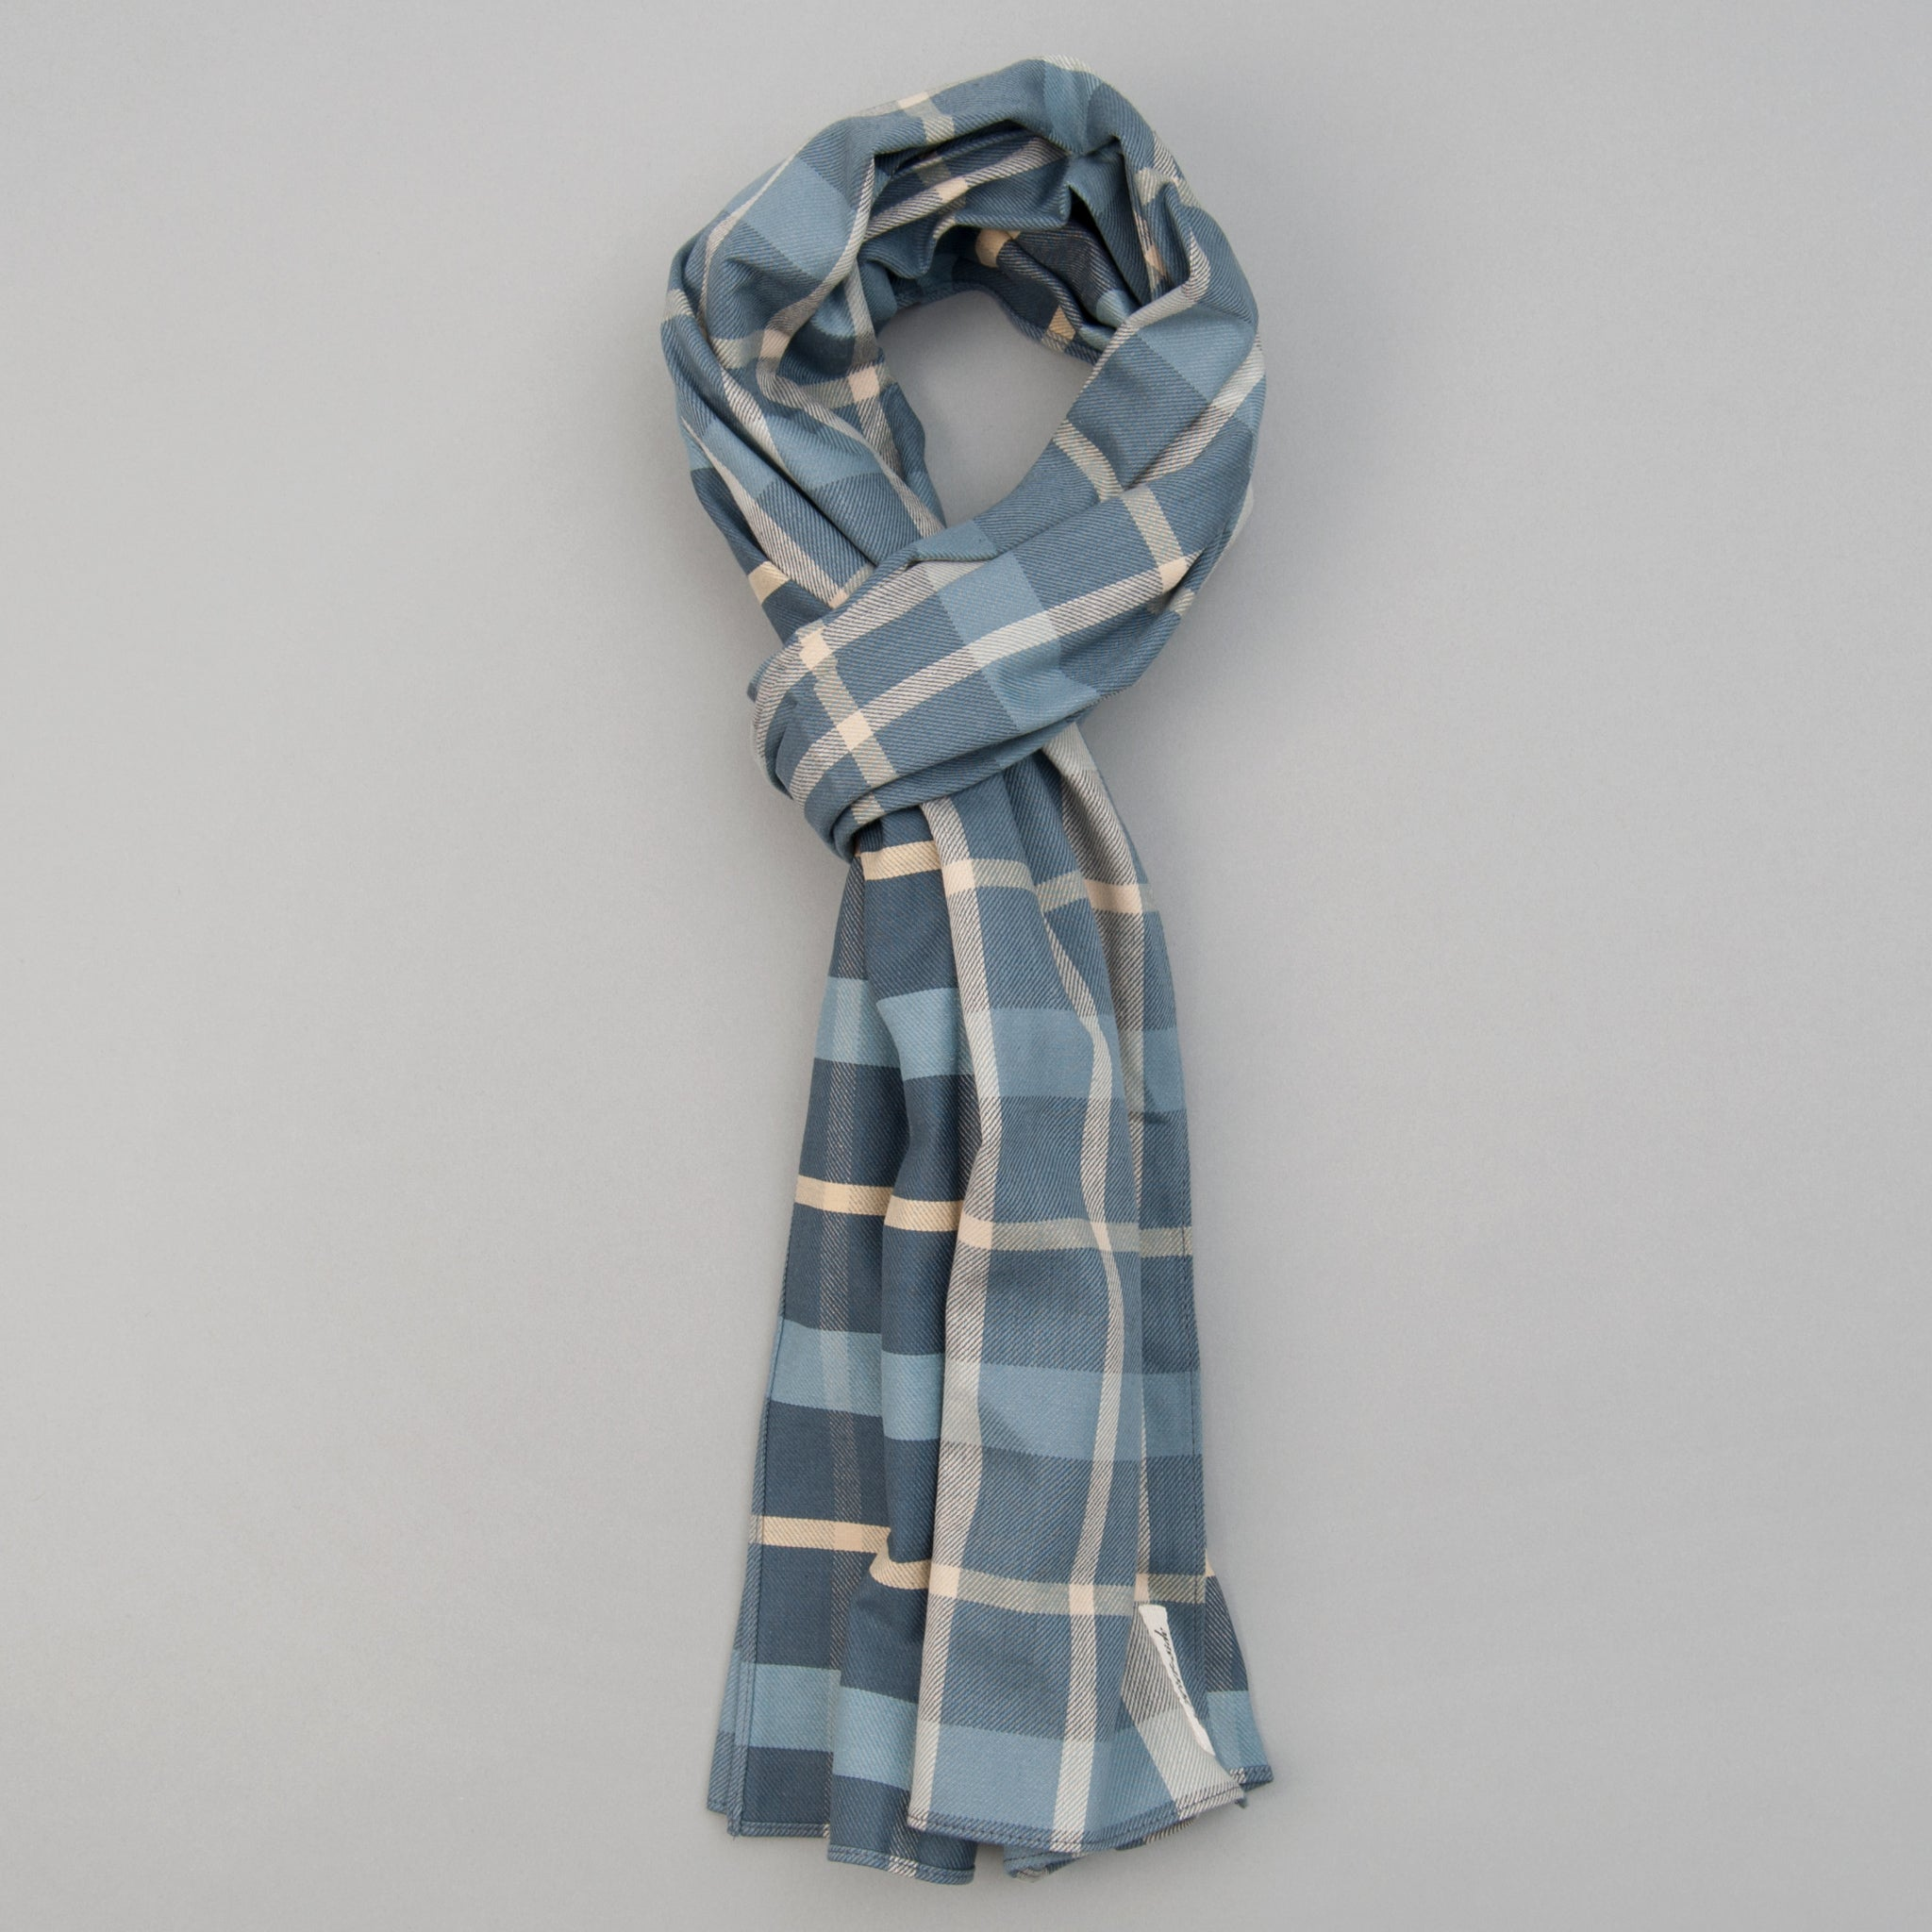 The Hill-Side - Scarf, Sulphur-Dyed Flannel Check, Slate Blue - SC1-376 - image 1